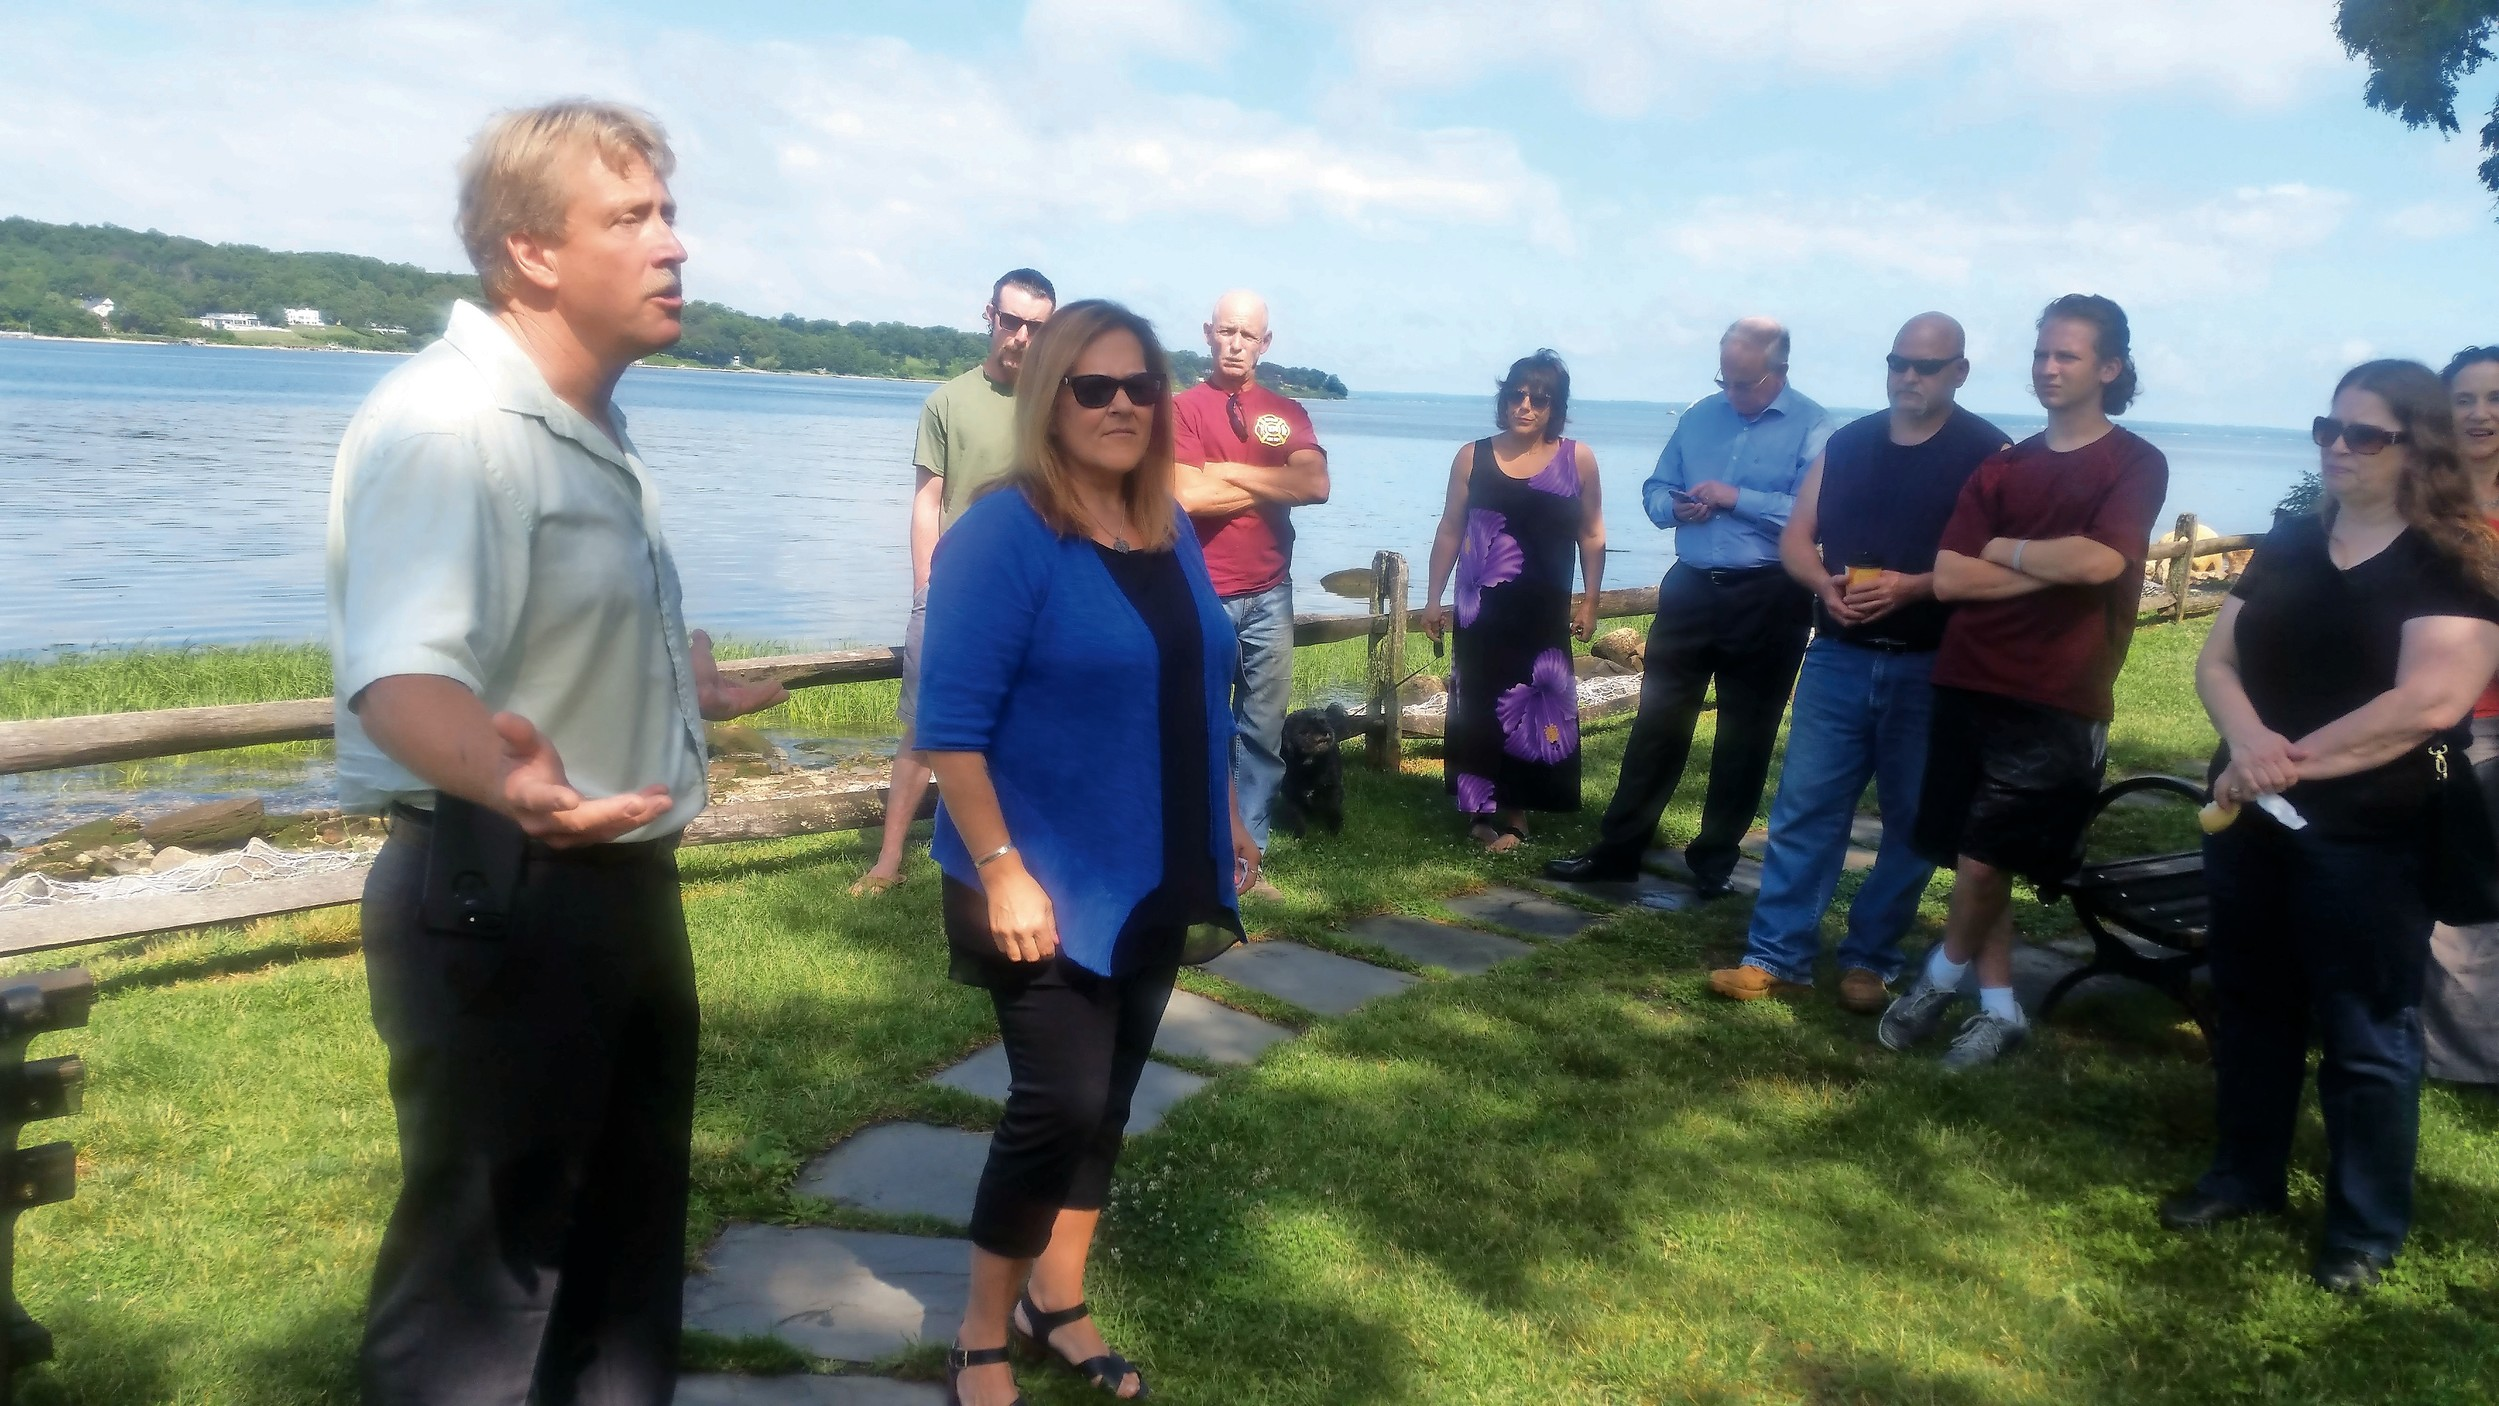 Surrounded by friends, family, and the Sea Cliff-Glen Head Lions Club, John and Lisa Brala held a ceremony at Rum Point Park to honor their son Shaun, who died in 2012. He was 21.